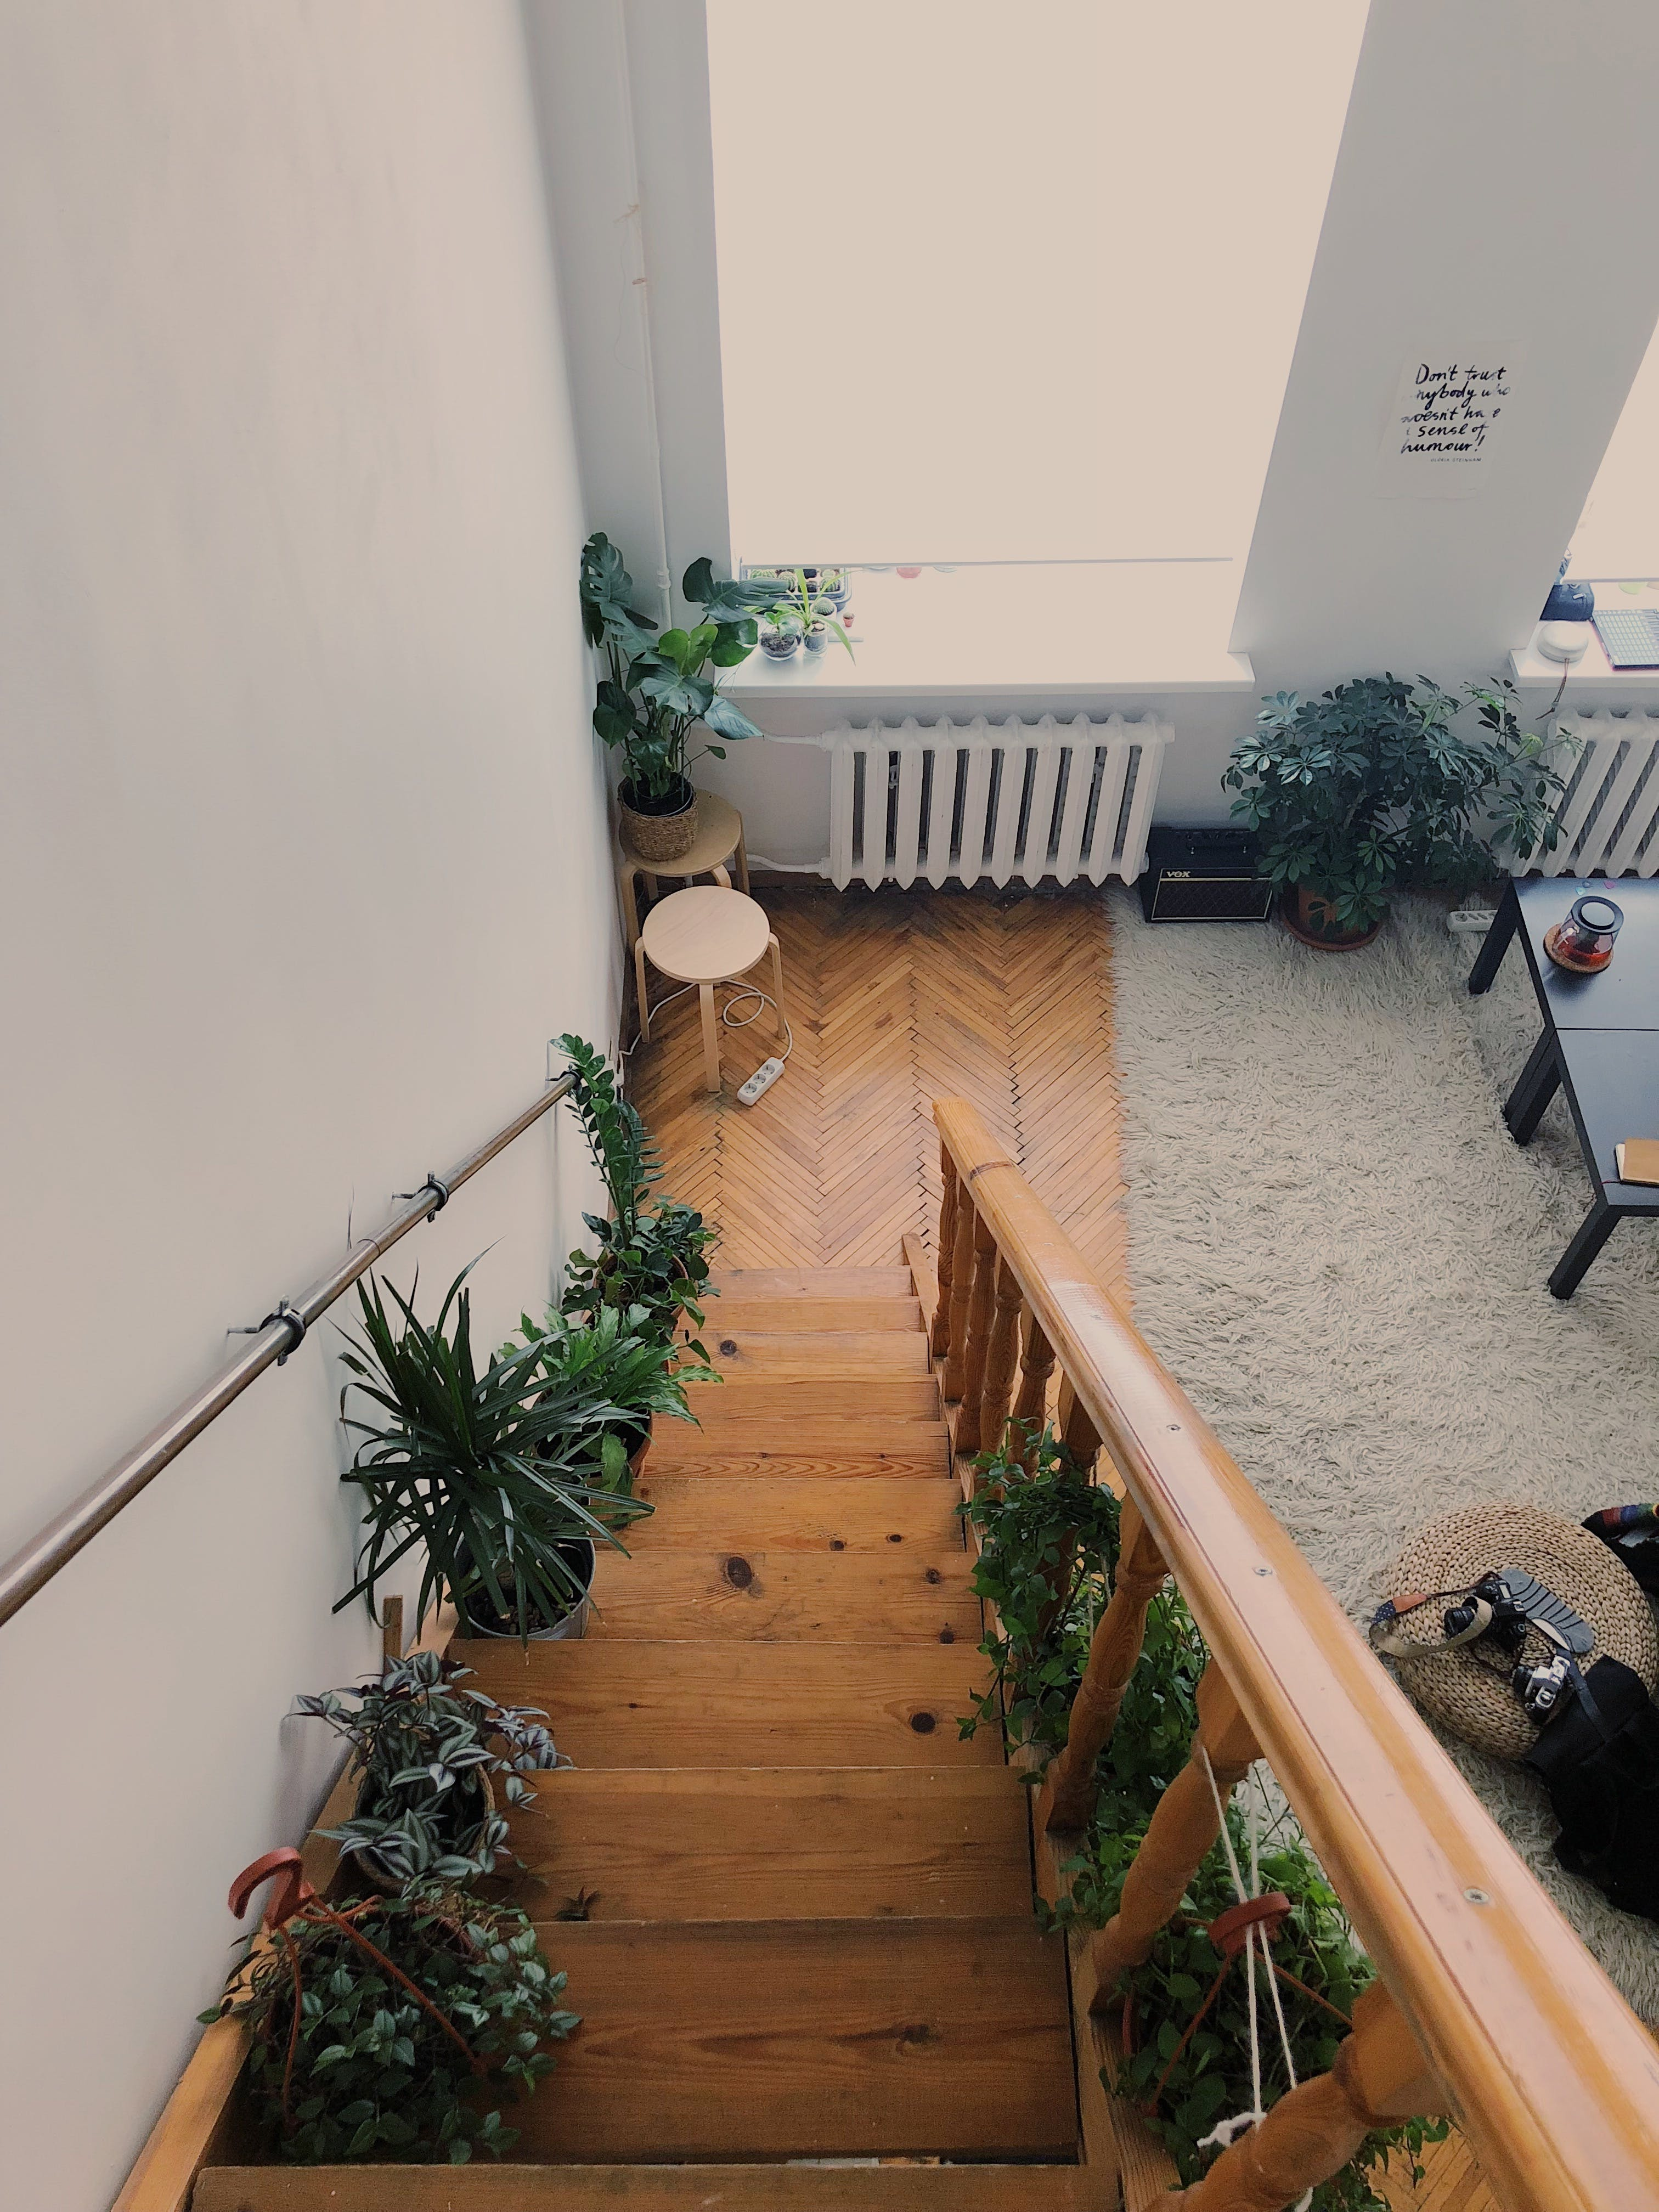 Plants Lined Up On Wooden Stairs